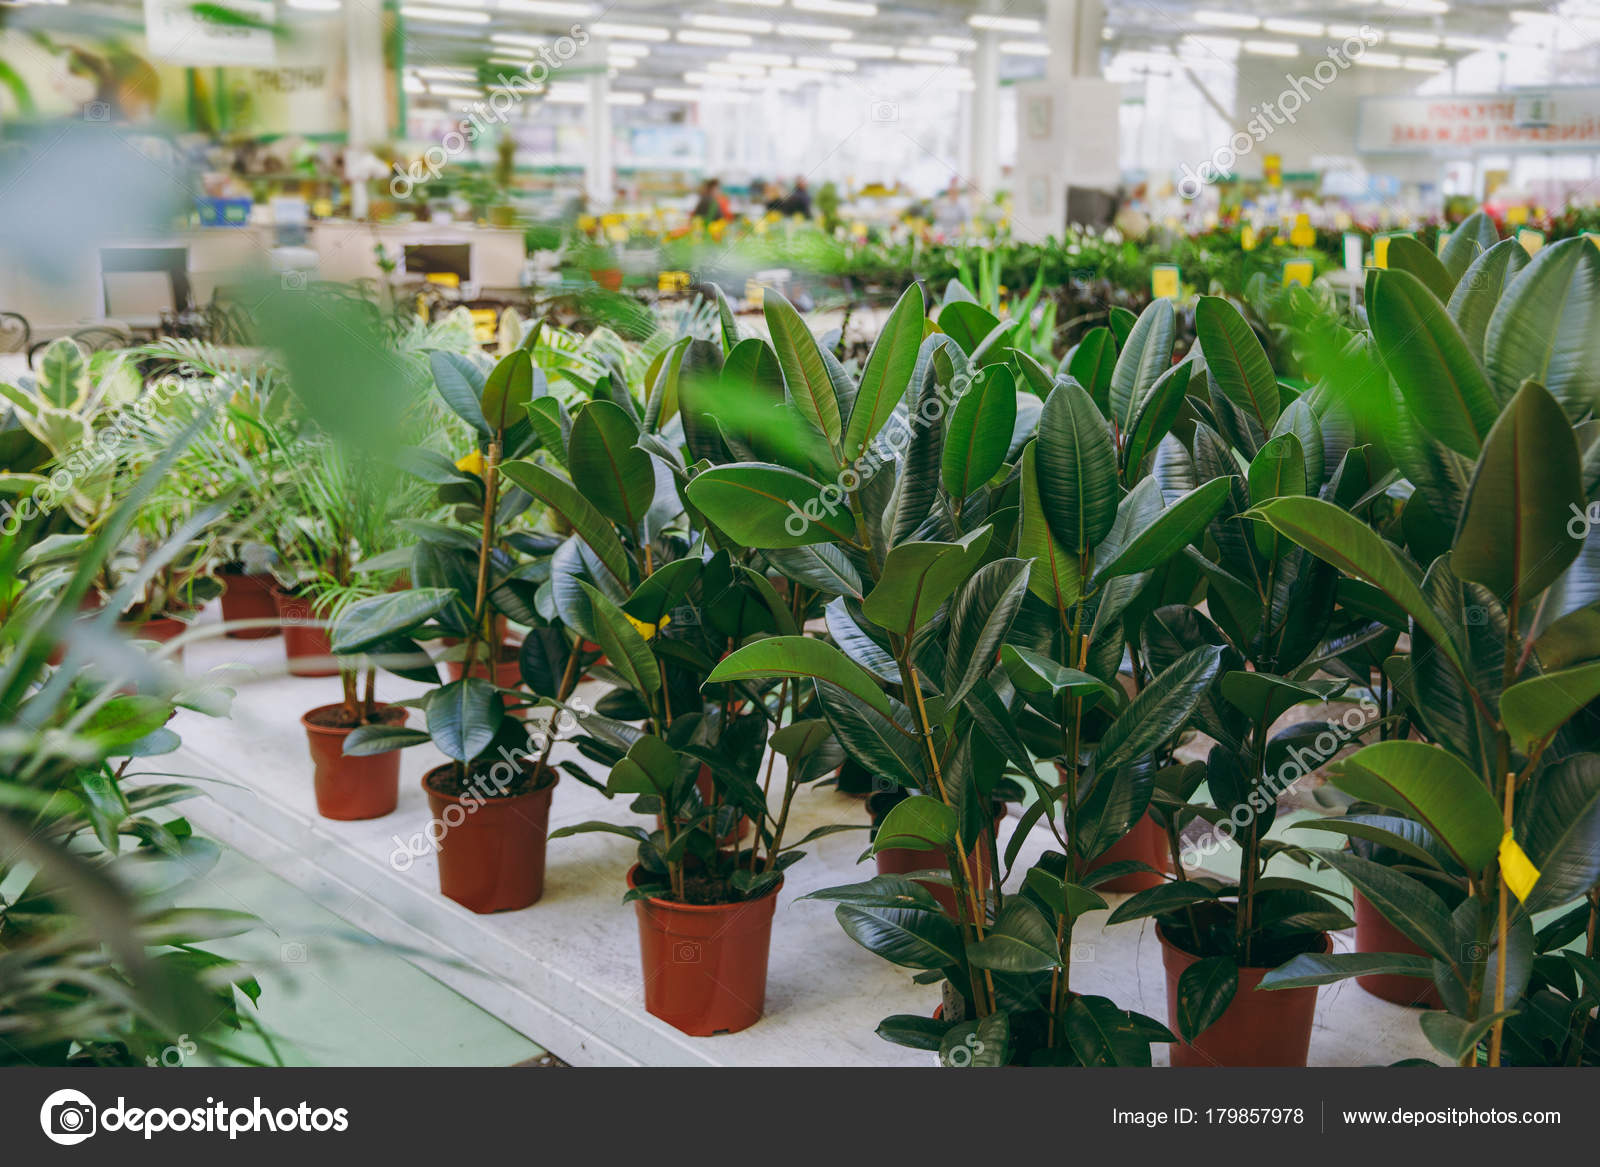 Beautiful House Plants Of Ficus Diffenbachia With Green Small And Big Leaves In Pots Close Up Shot Stock Photo Image By C Dmvasilenko 179857978